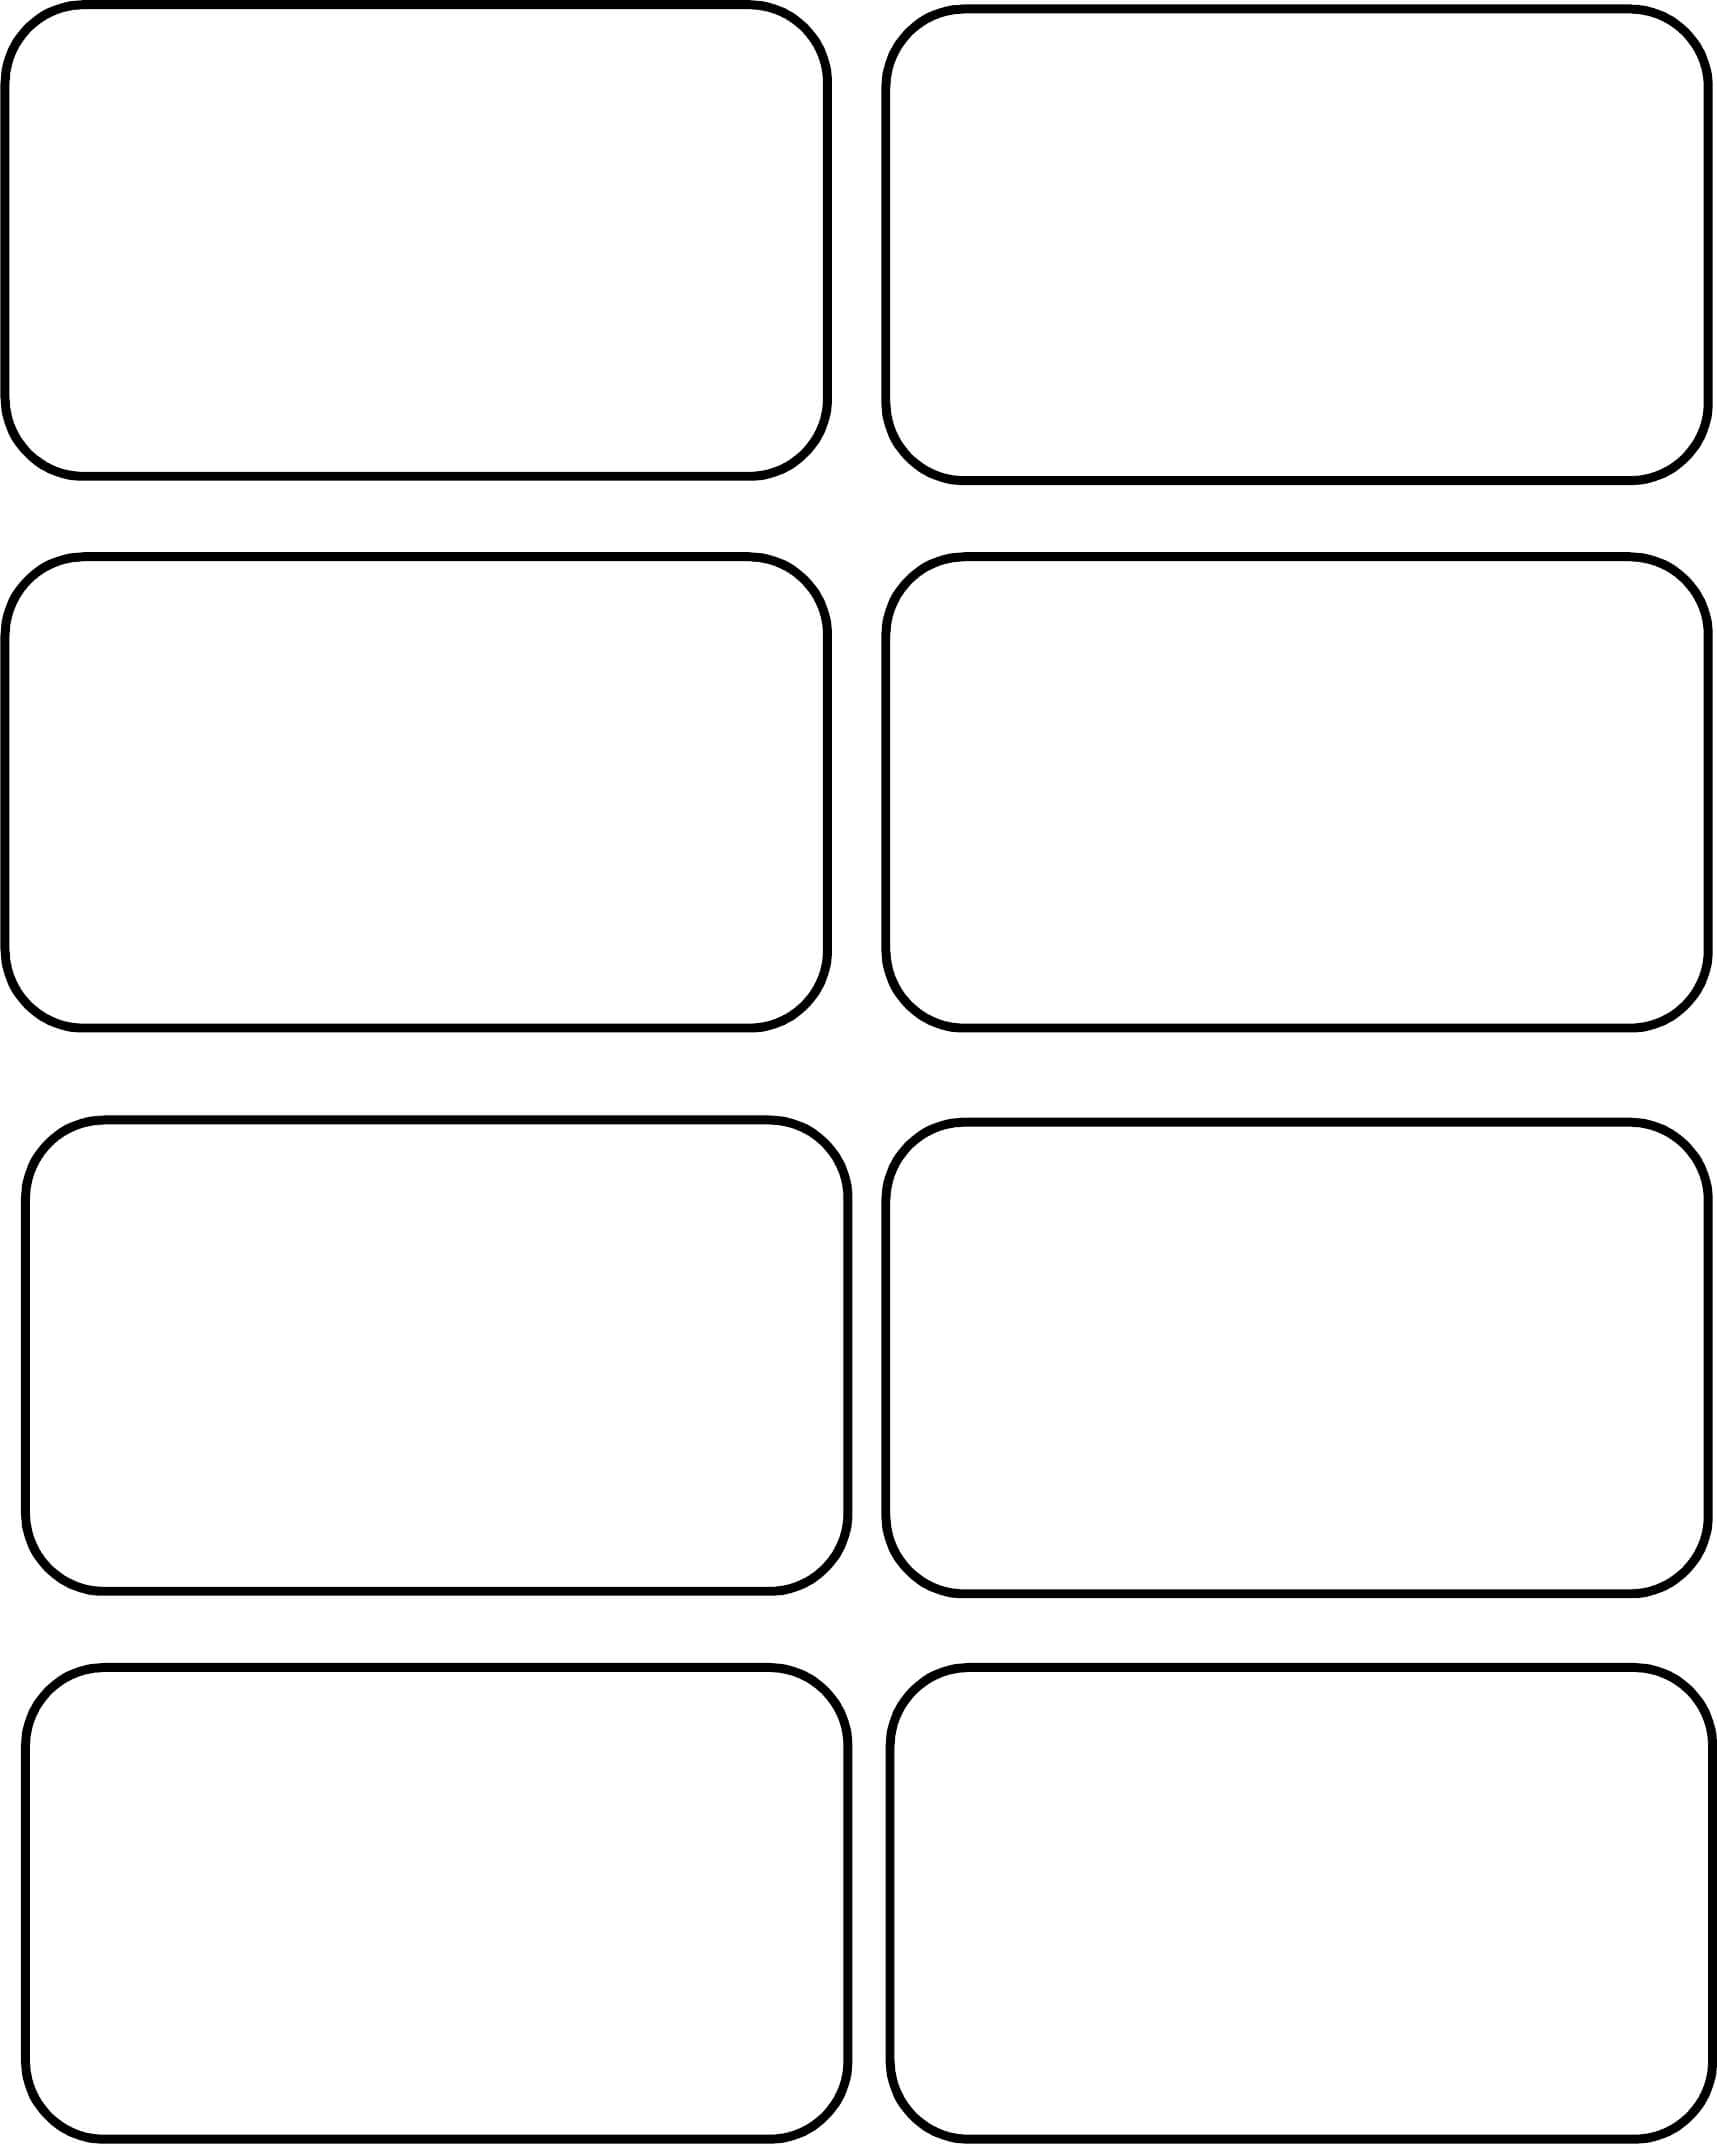 Template Of Luggage Tag Free Download Intended For Blank Luggage Tag Template